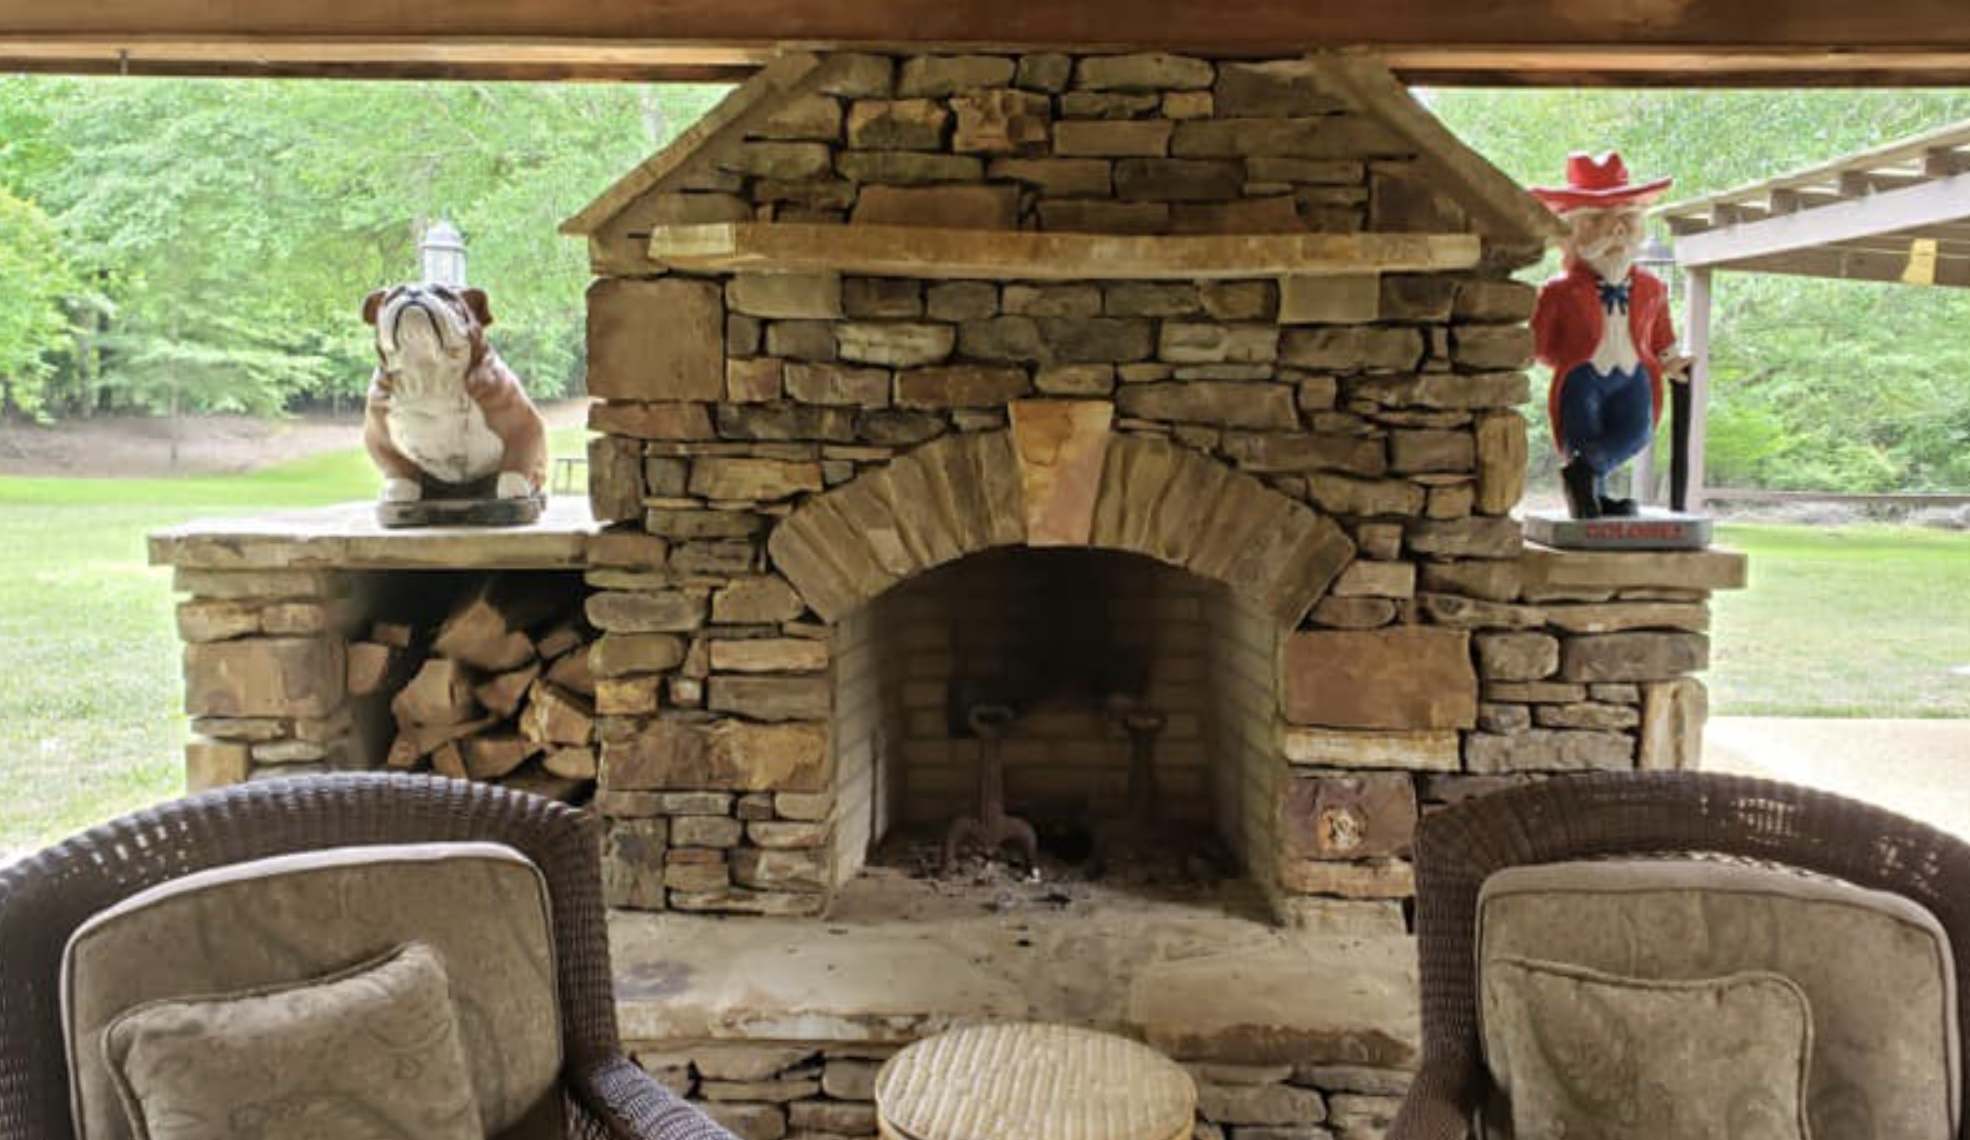 this image shows fireplace in Cupertino, California